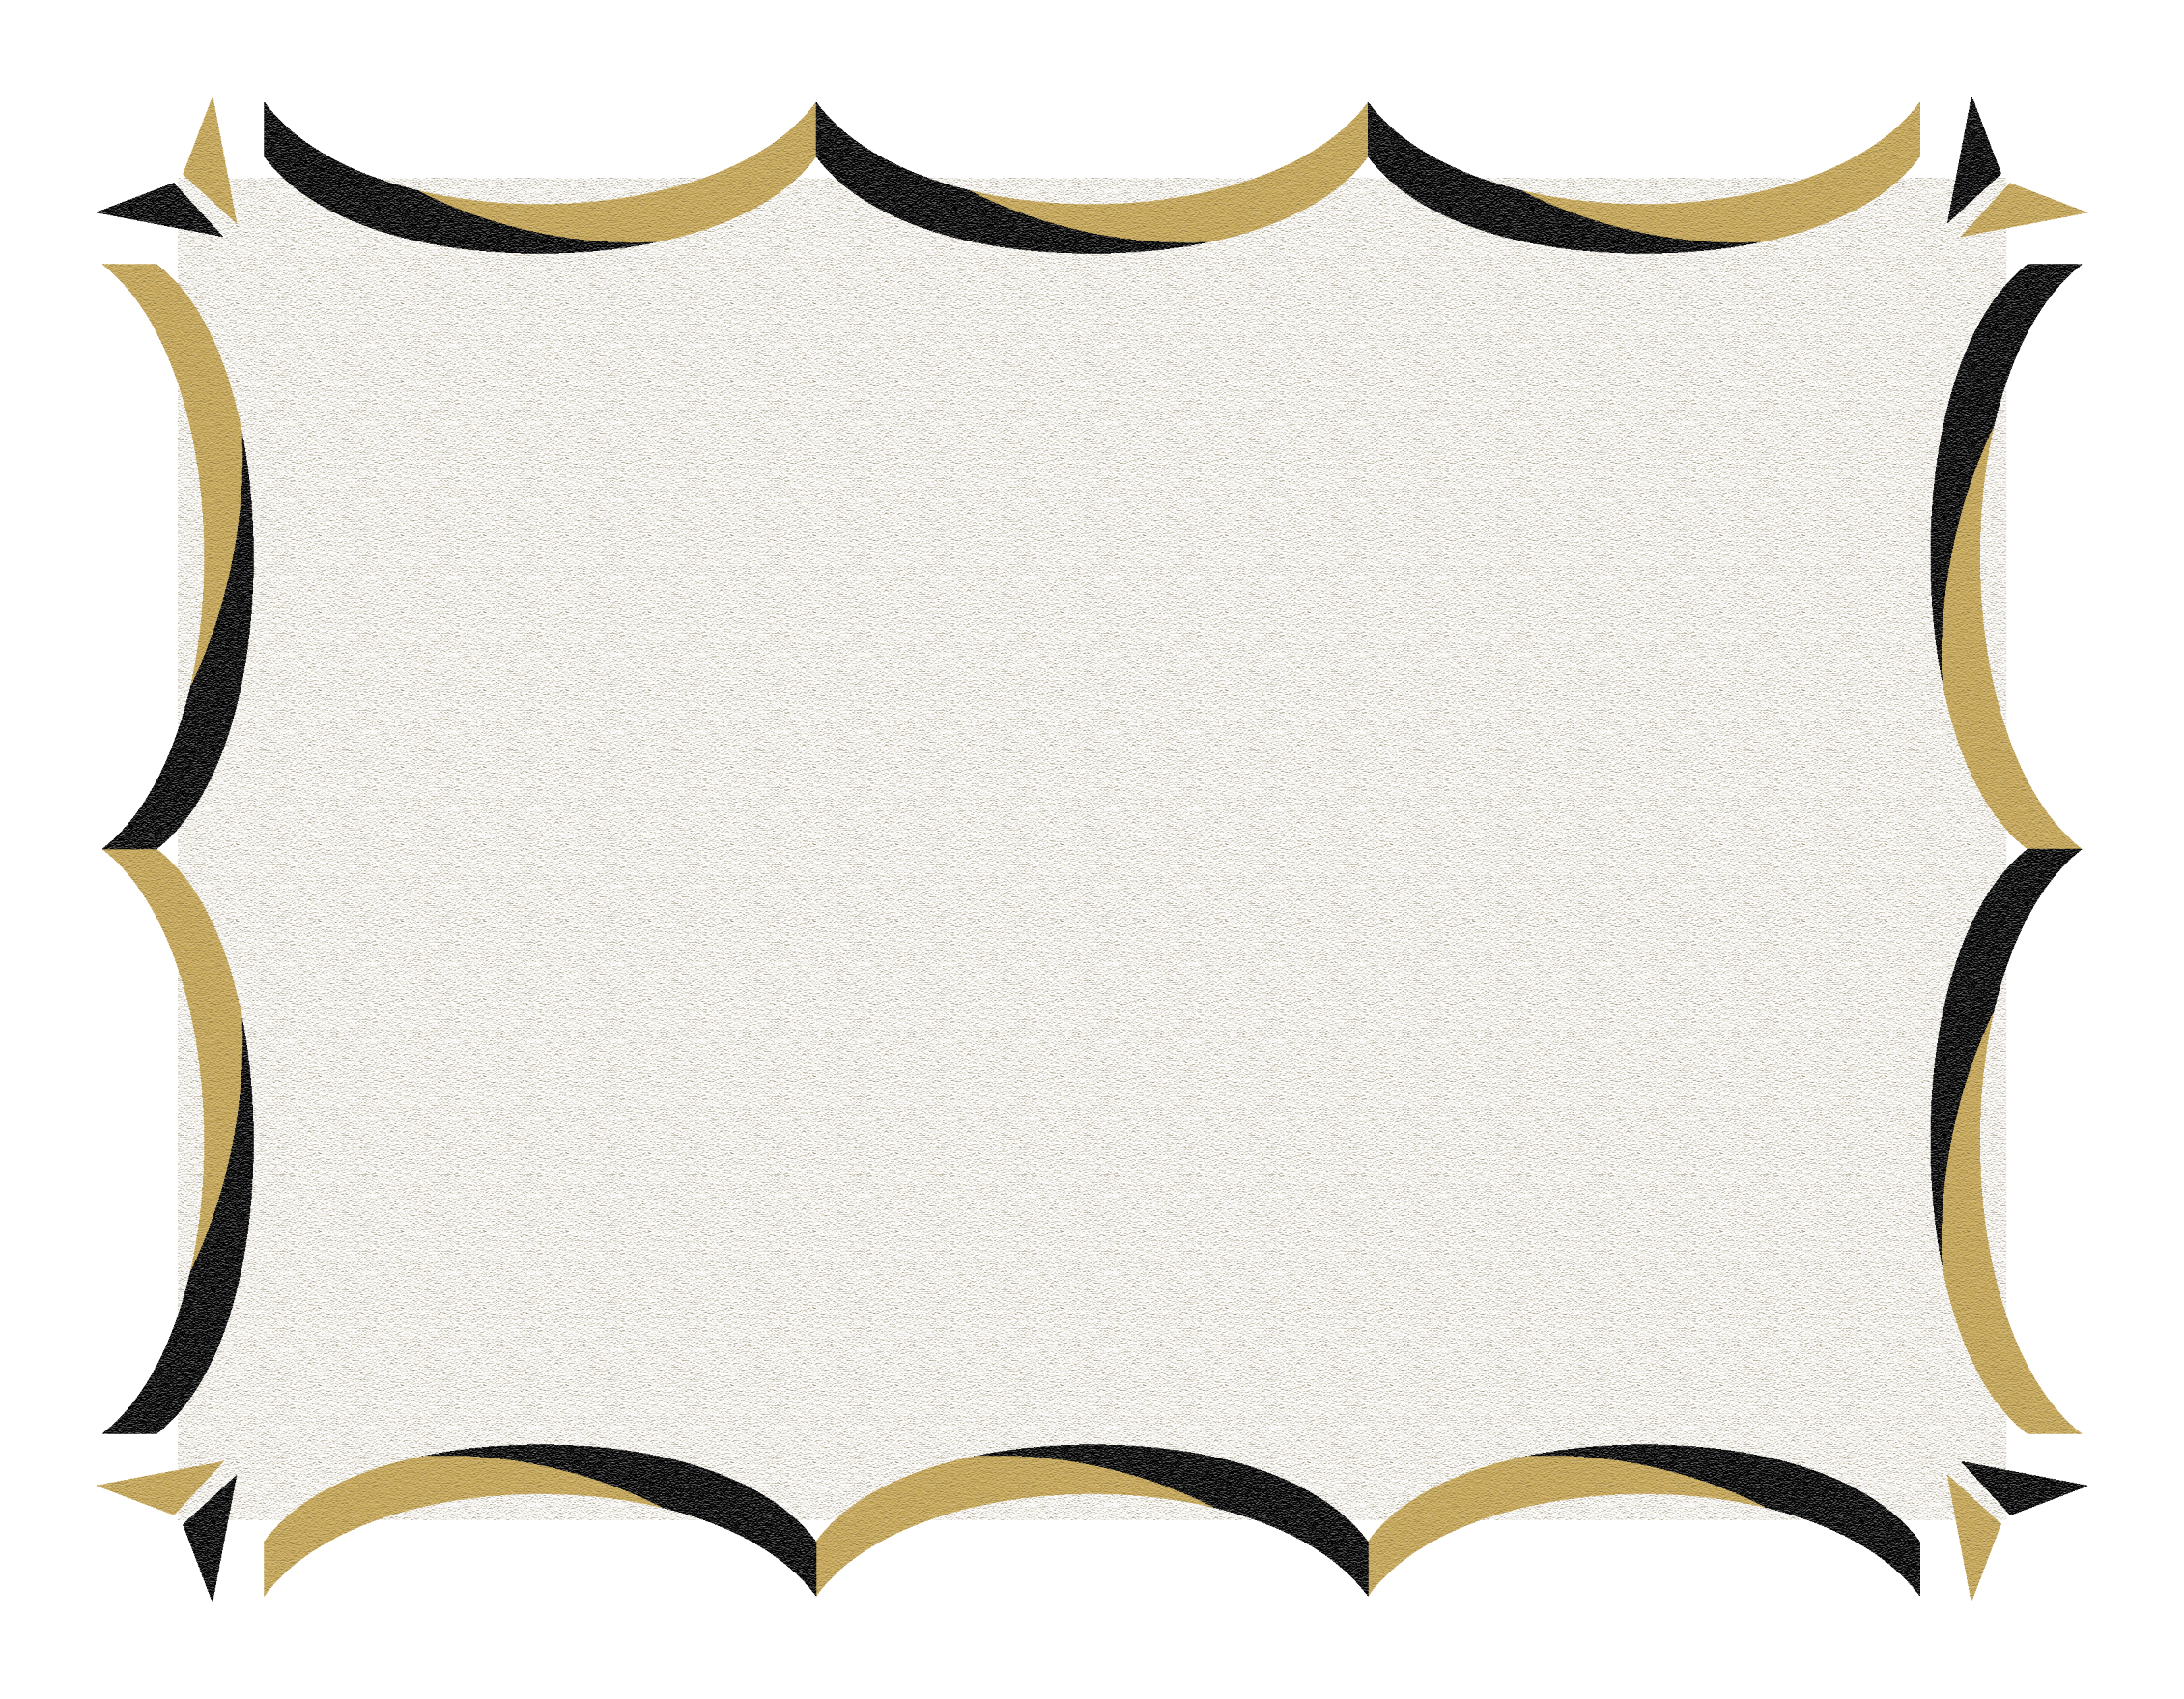 Gold And Black Border Page   Clipart Best   Clipart Best